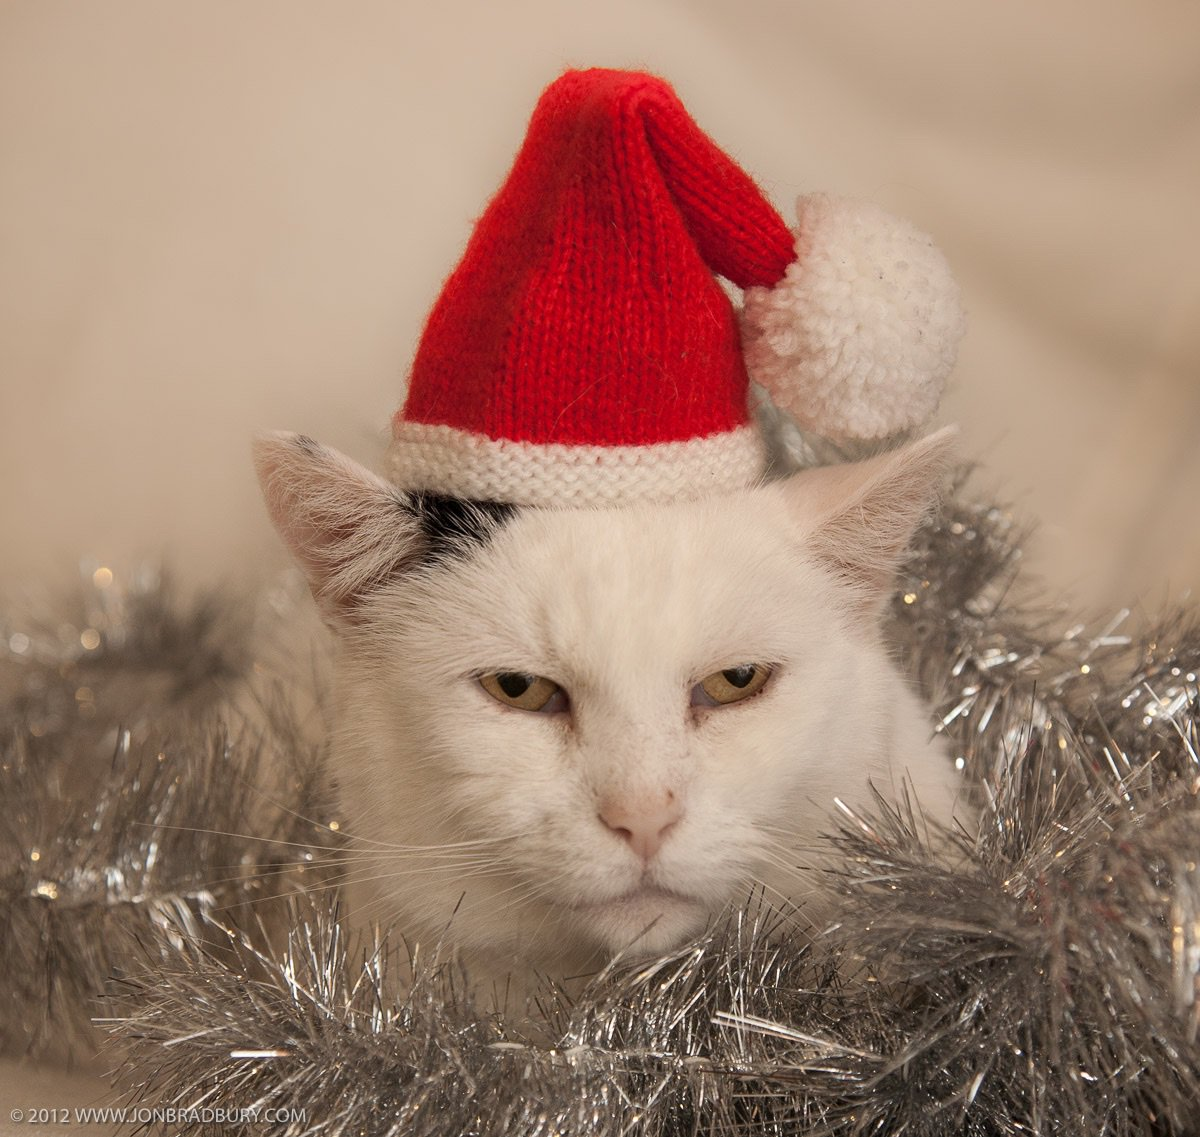 @eimaj_j @serichards love that, mind you I don't think our cat liked Christmas/Christianity forced on him either https://t.co/ClHmqNcCAP